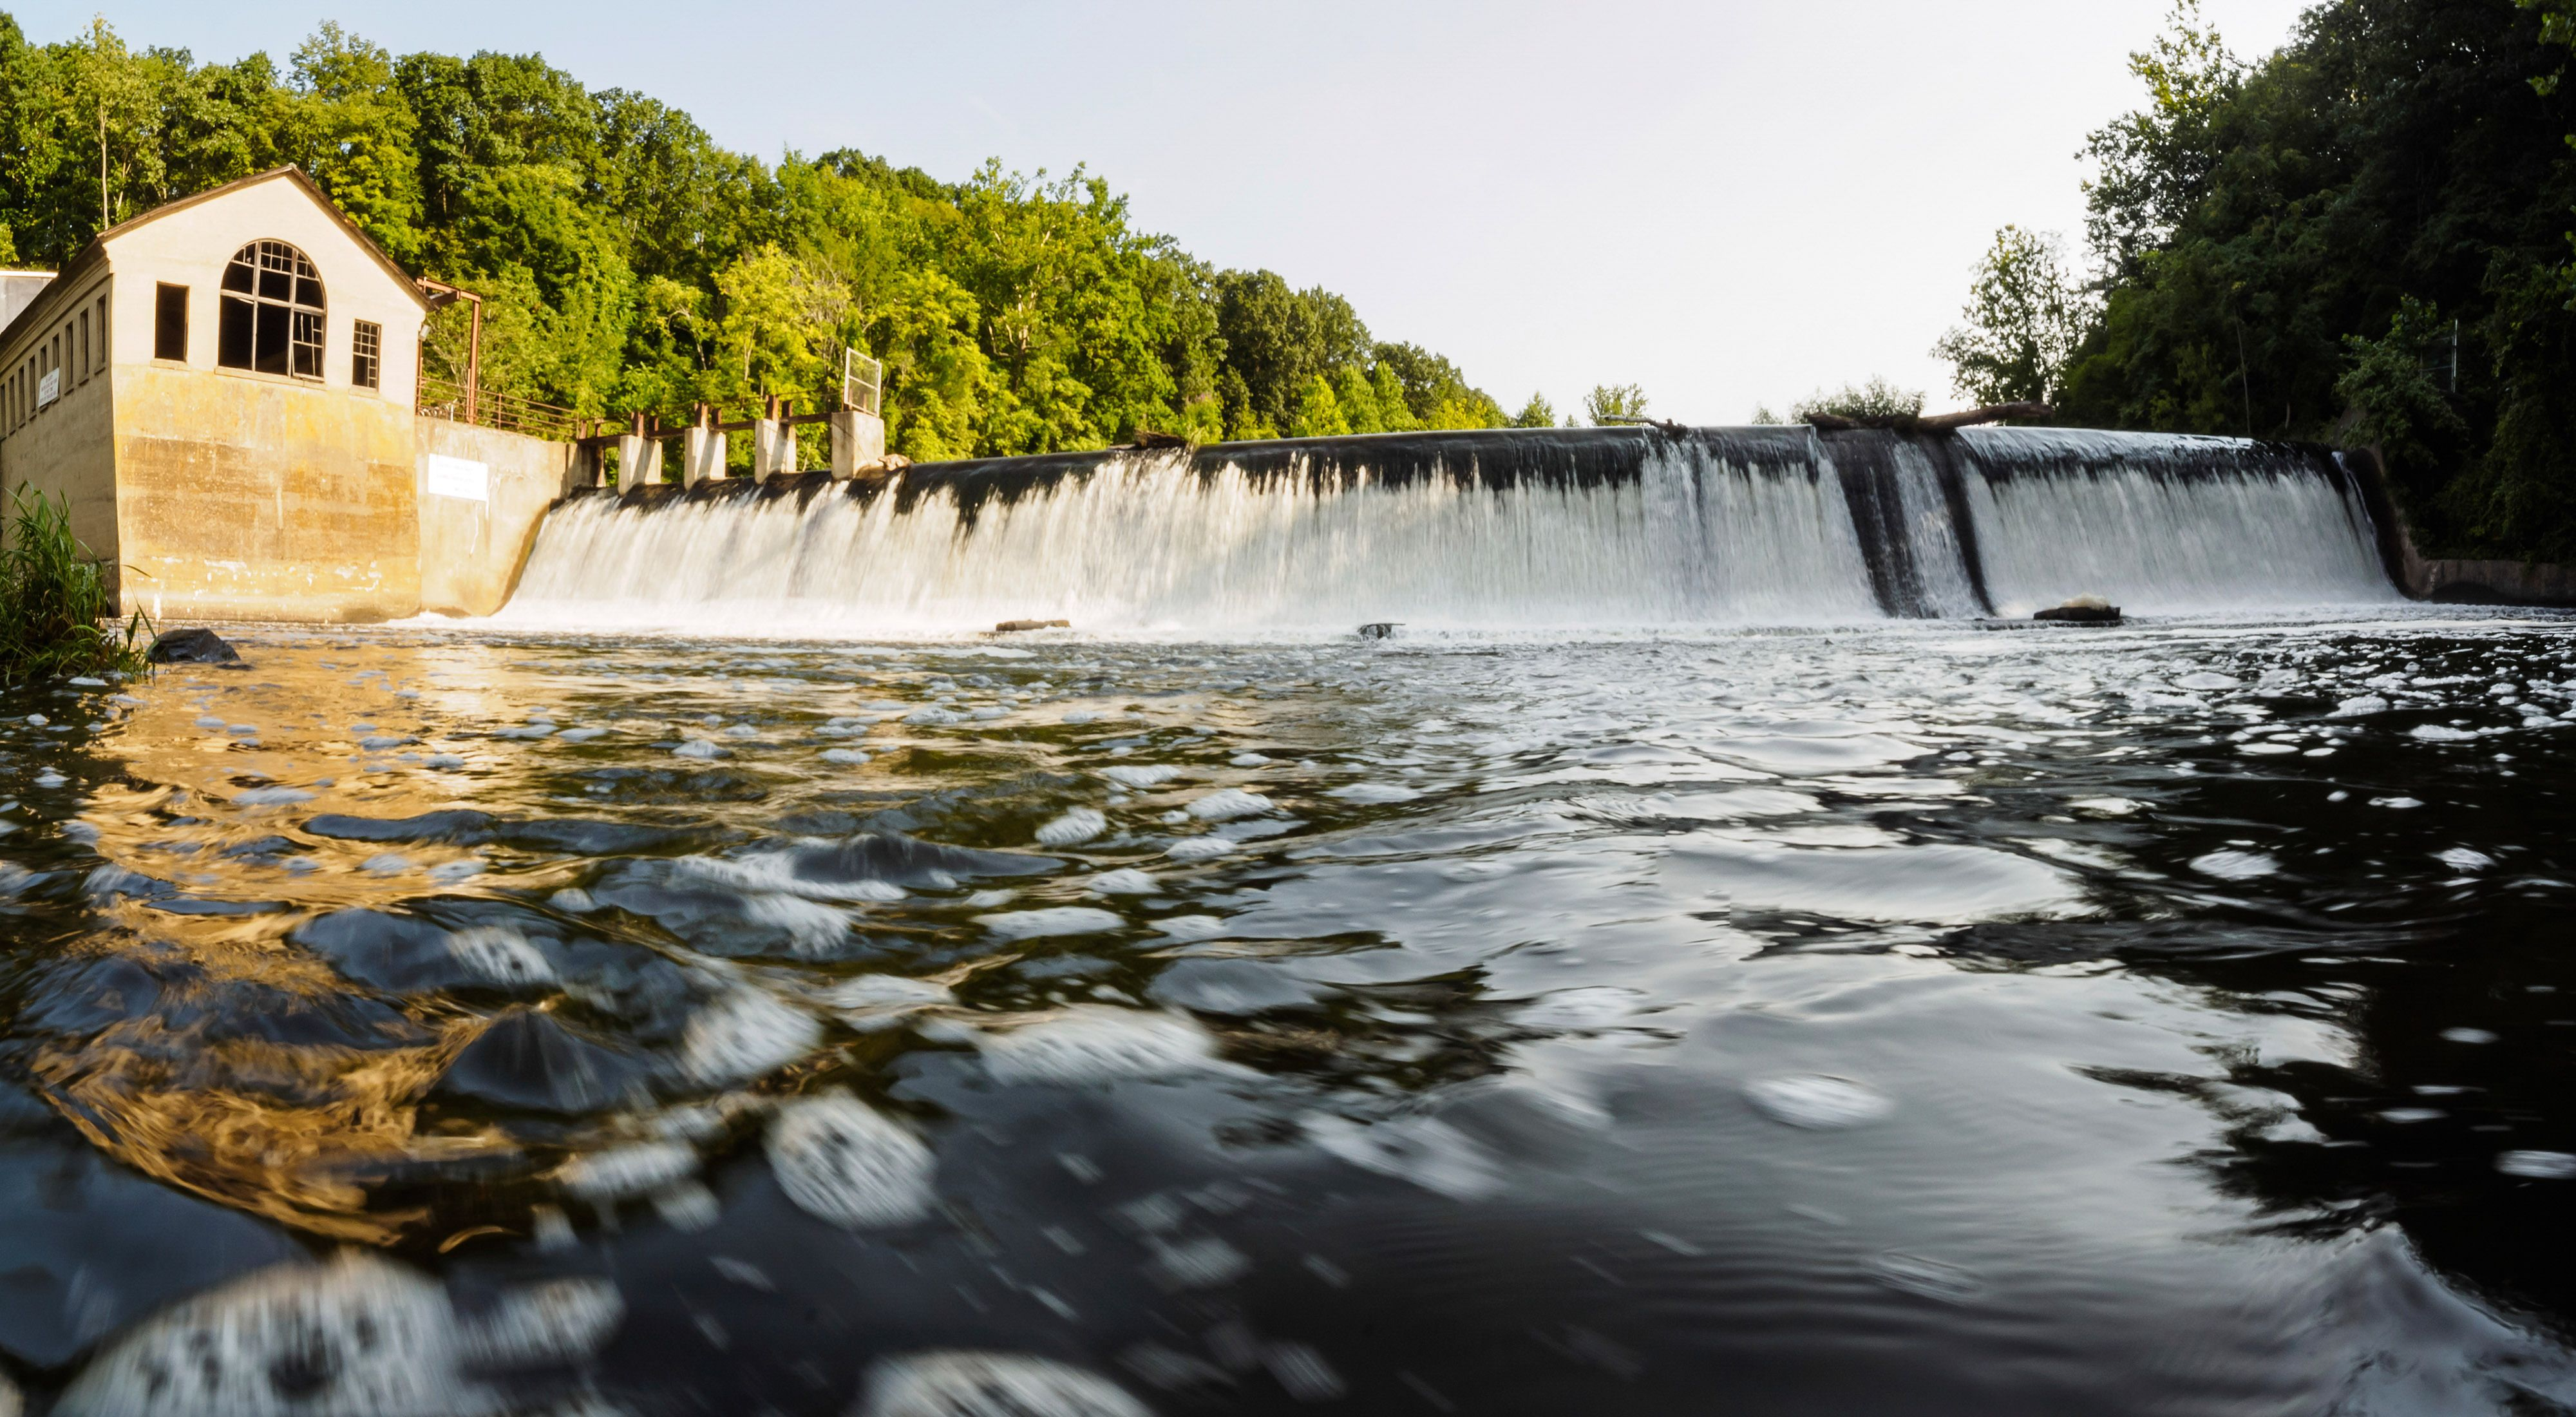 The Columbia Lake Dam  created an 18-foot high barrier for migratory American shad swimming in from the Delaware River to spawn in the Paulins Kill's calm waters.